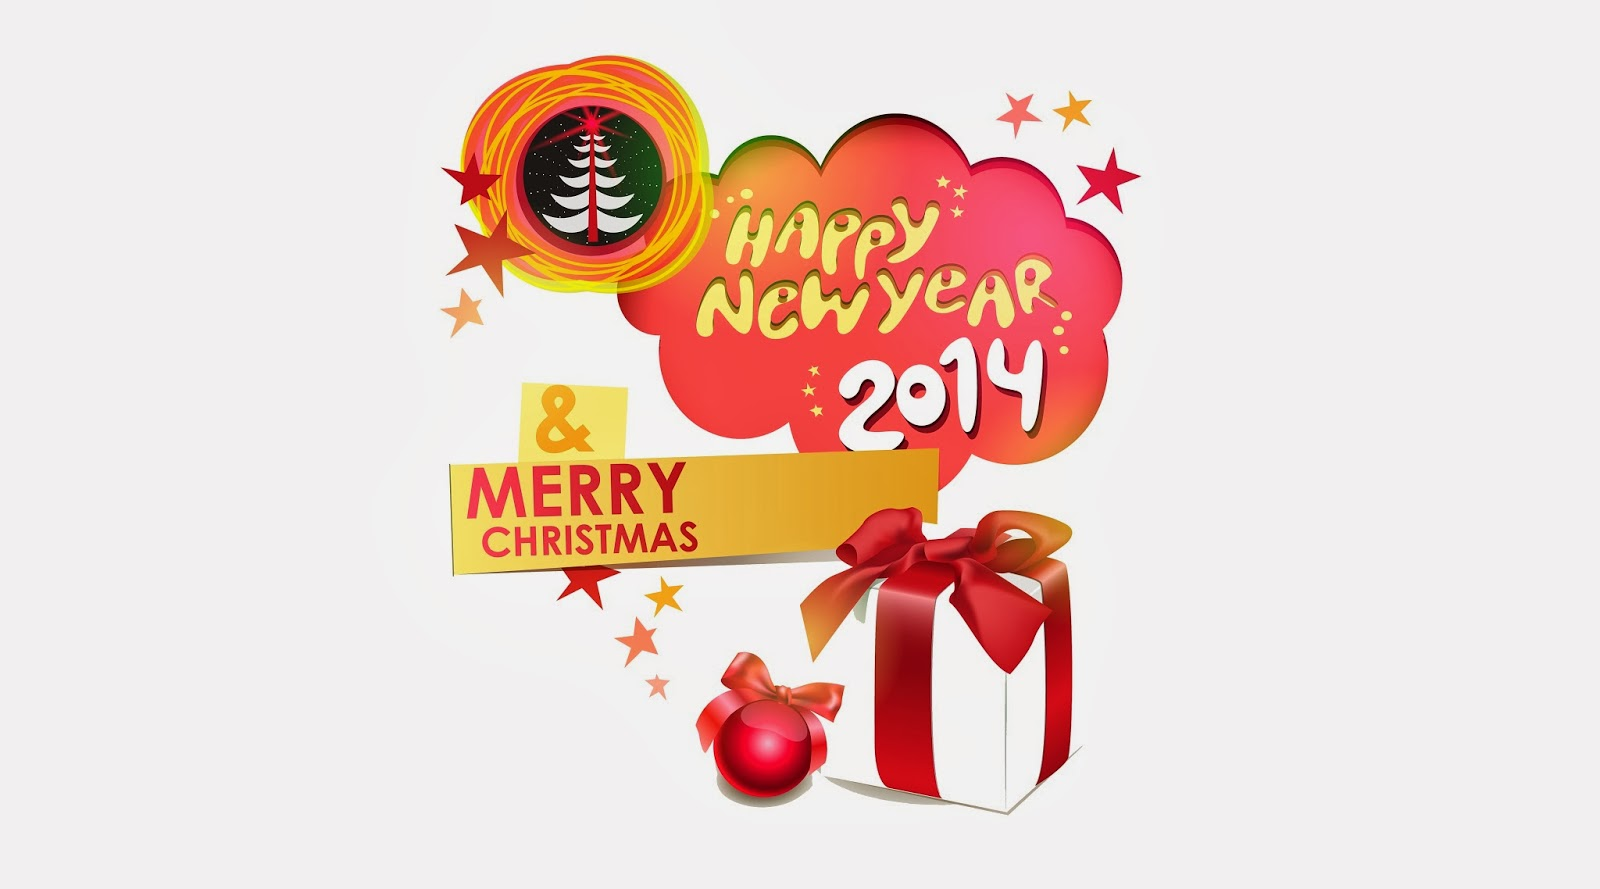 New_Year_wallpapers_Happy_New_Year_and_Merry_Christmas_2014_047649